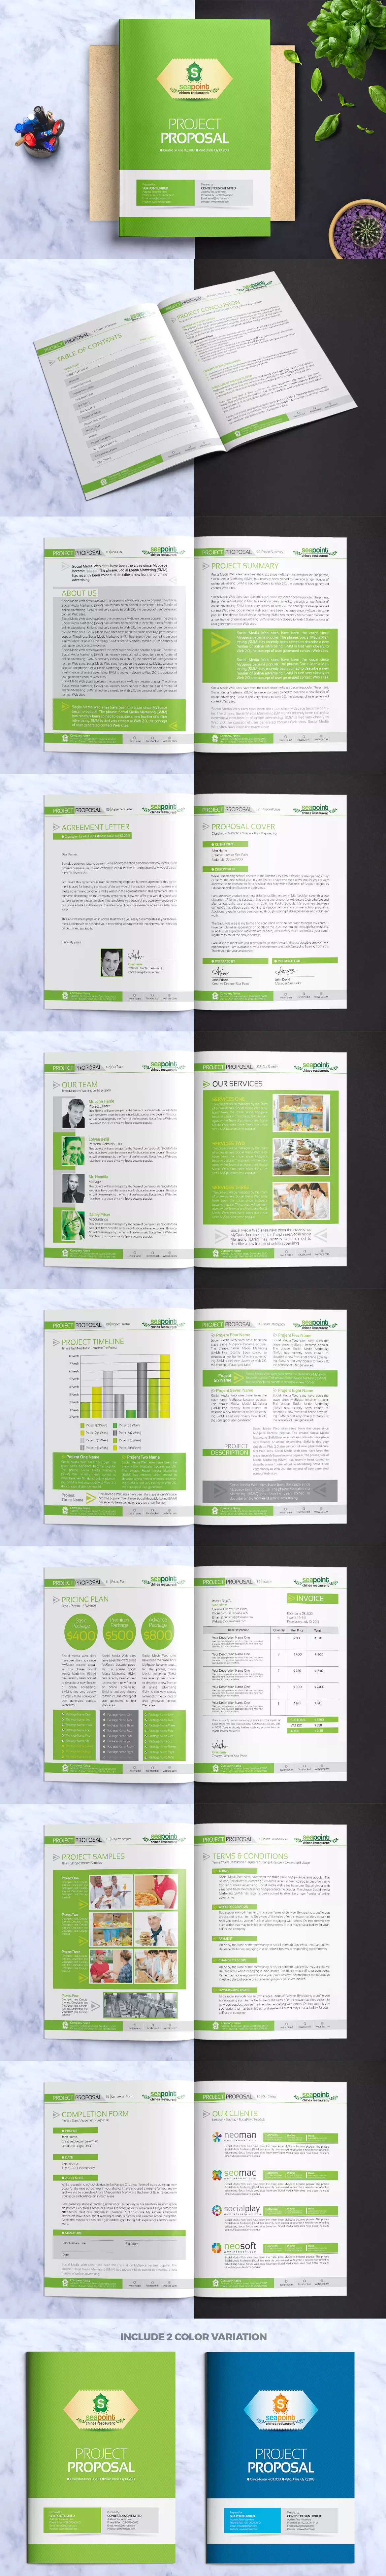 corporate creative clean project proposal template ai eps a4 letter size